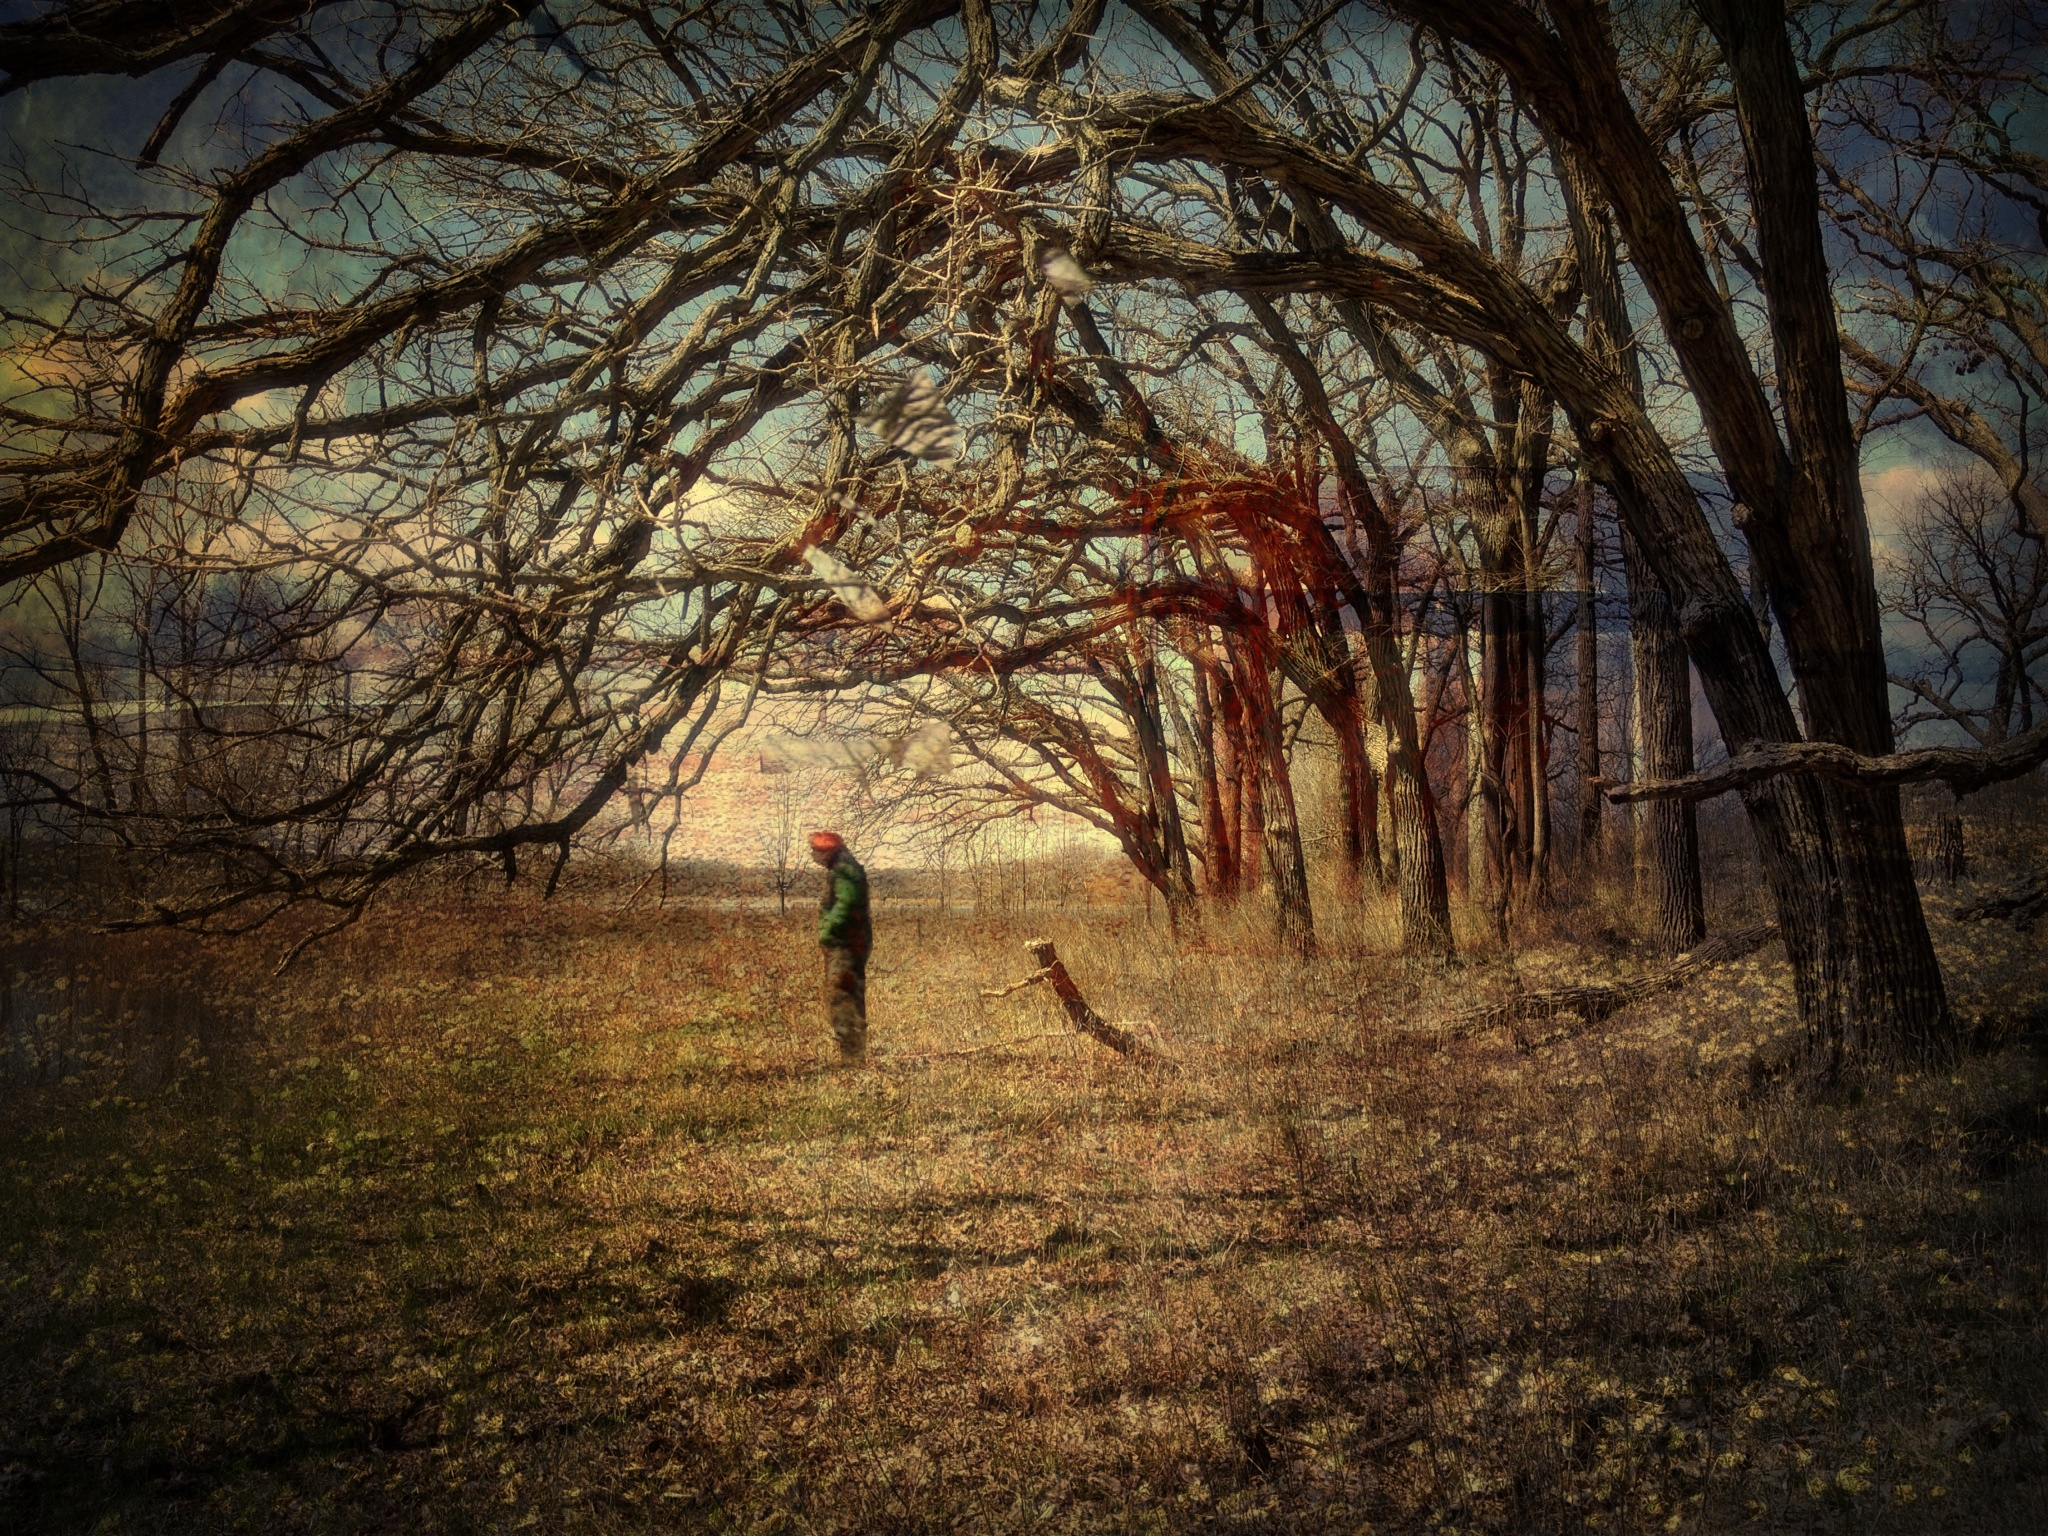 Irene Oleksiuk ~ The trees felt his sorrow and leaned down to embrace him